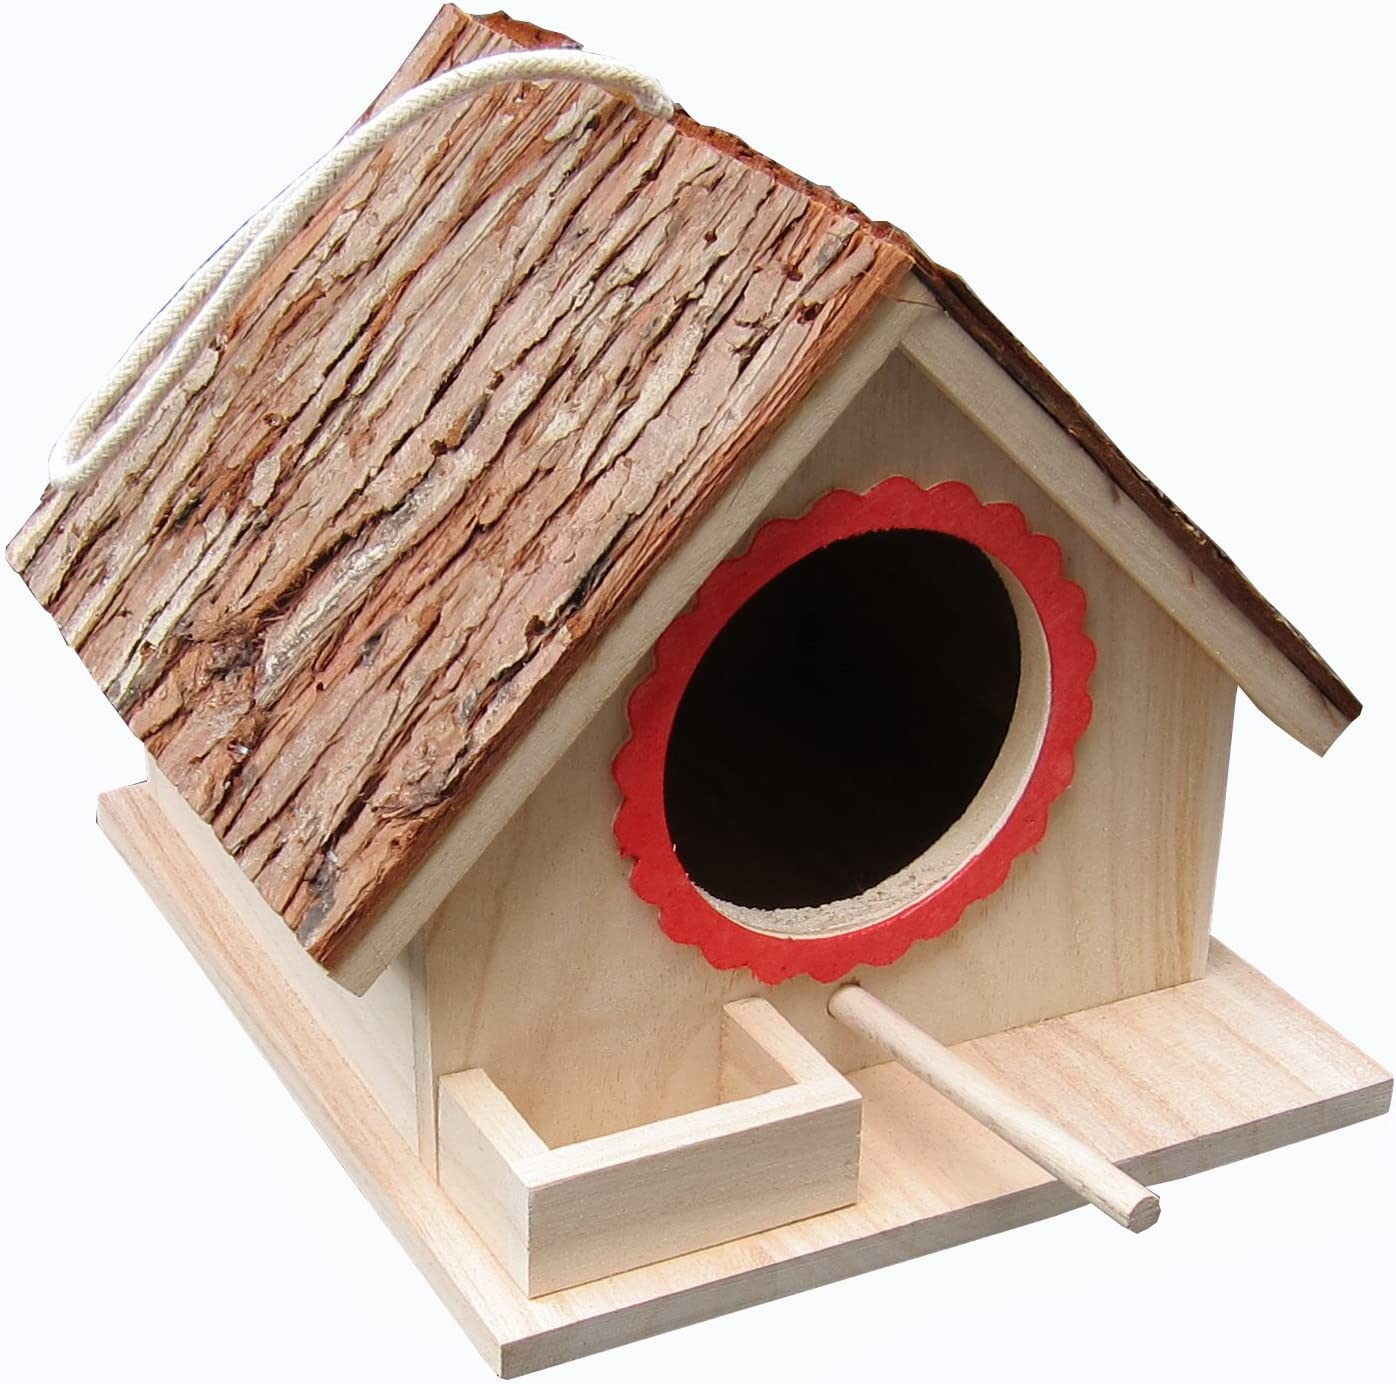 Tree Bark Roof Bird Feeding House, Bird Nesting Box, Assembled(READY TO USE),for Big Birds Like Cockatiel, Budgie, Parakeet, Dove as well as Small Birds Wren and Chickadee Species, Bluebirds etc